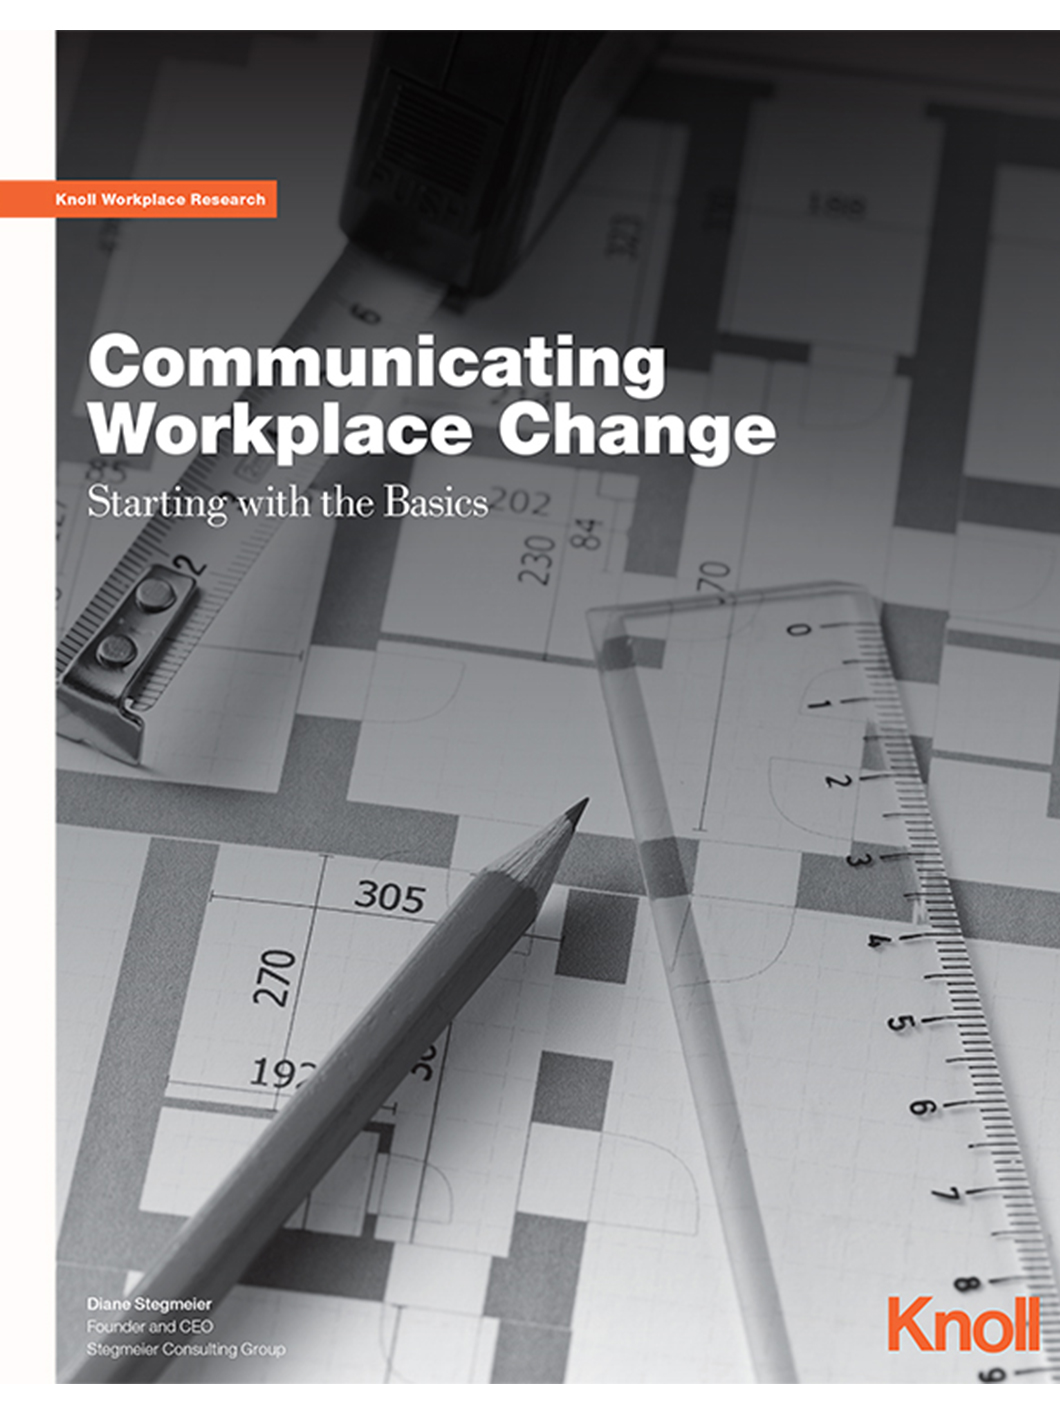 Research paper on communication in the workplace